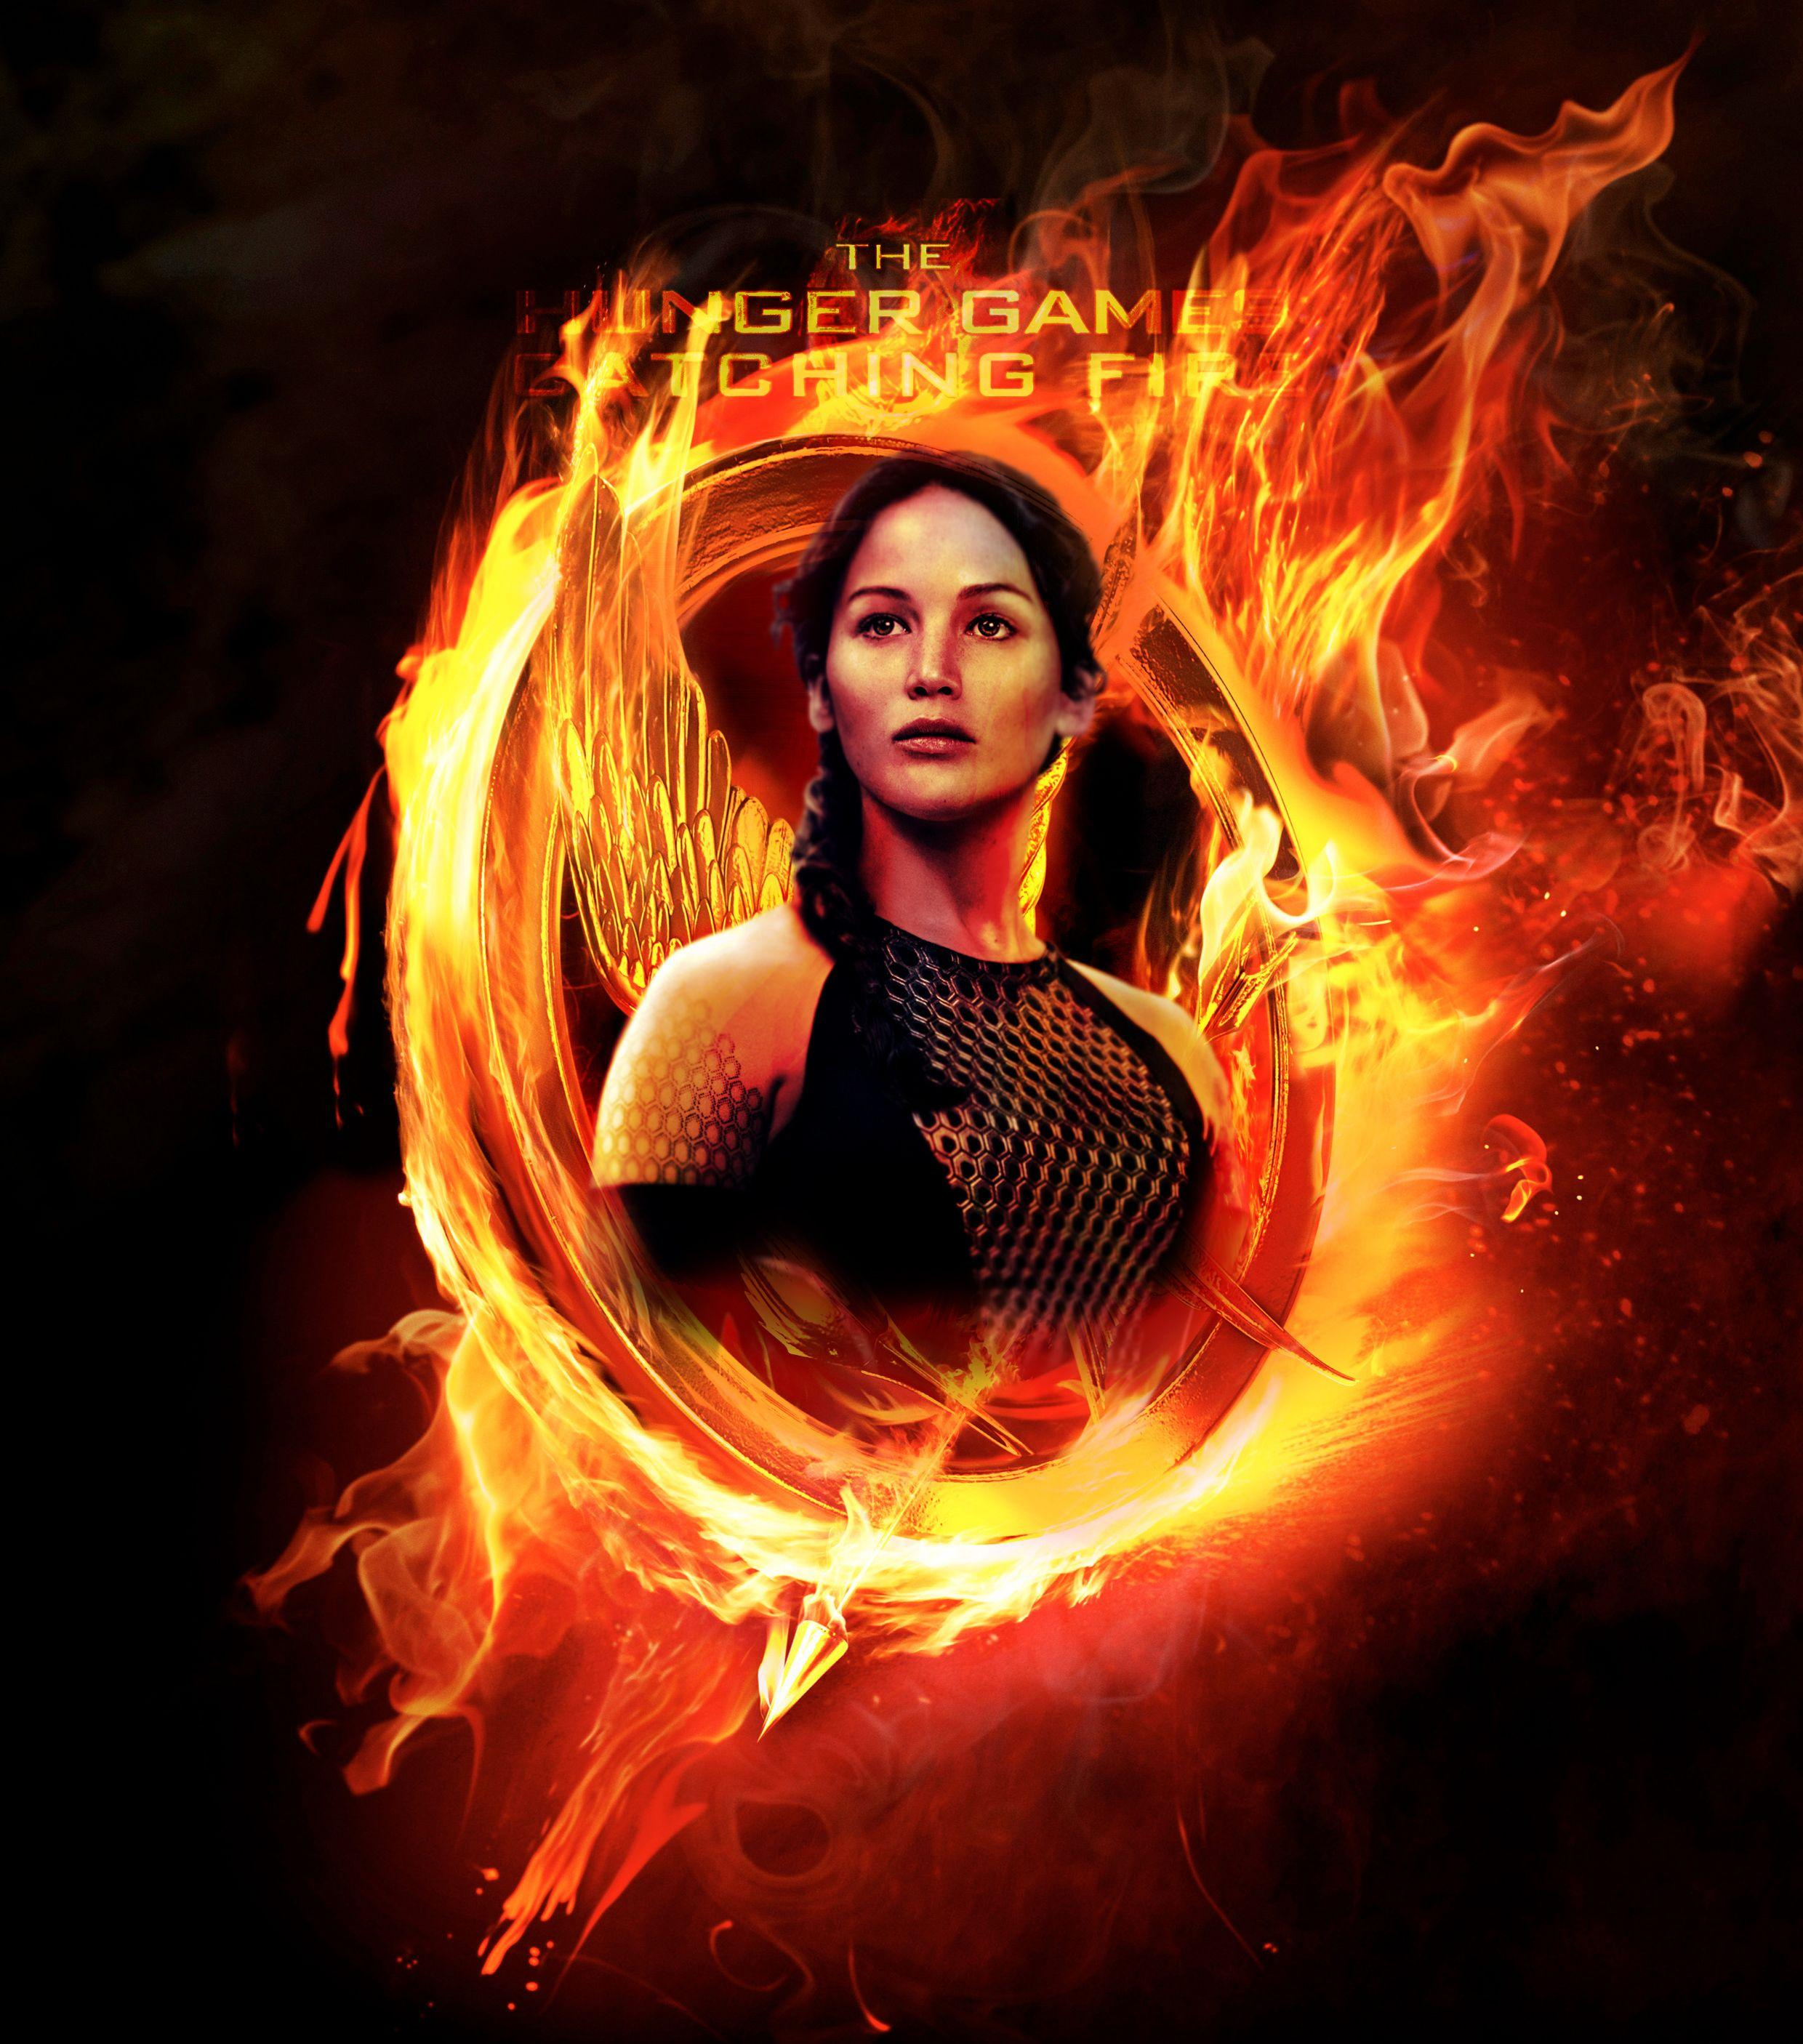 Hunger Games Catching Fire Wallpapers - Wallpaper Cave